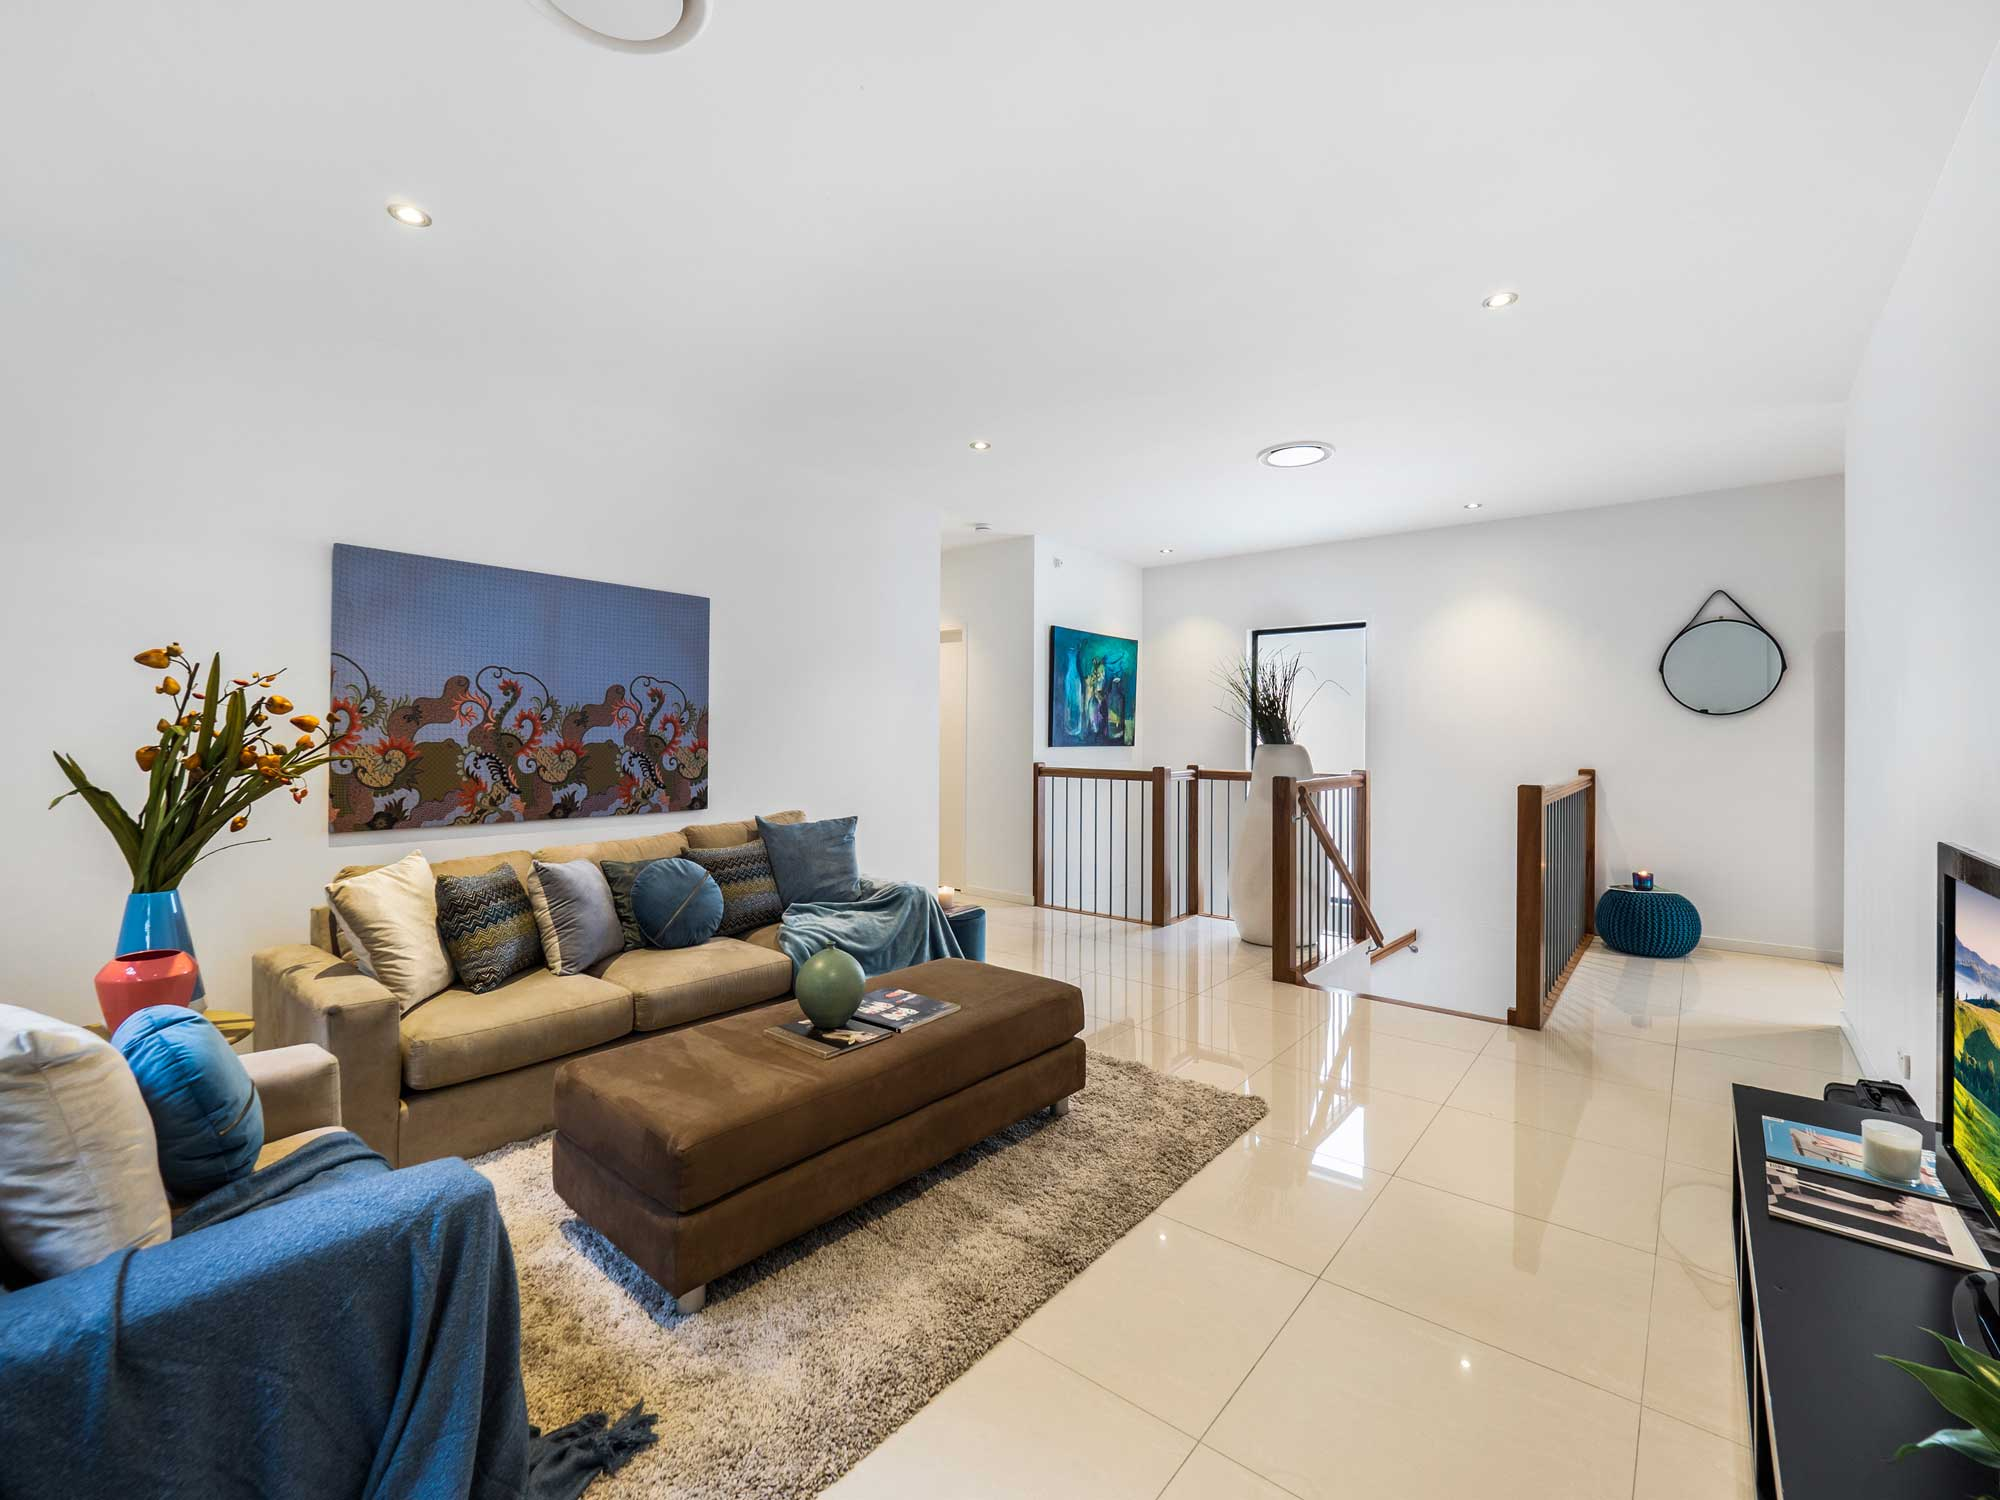 Family room - Real estate photography for a new home listing at Wavell Heights, Brisbane north side